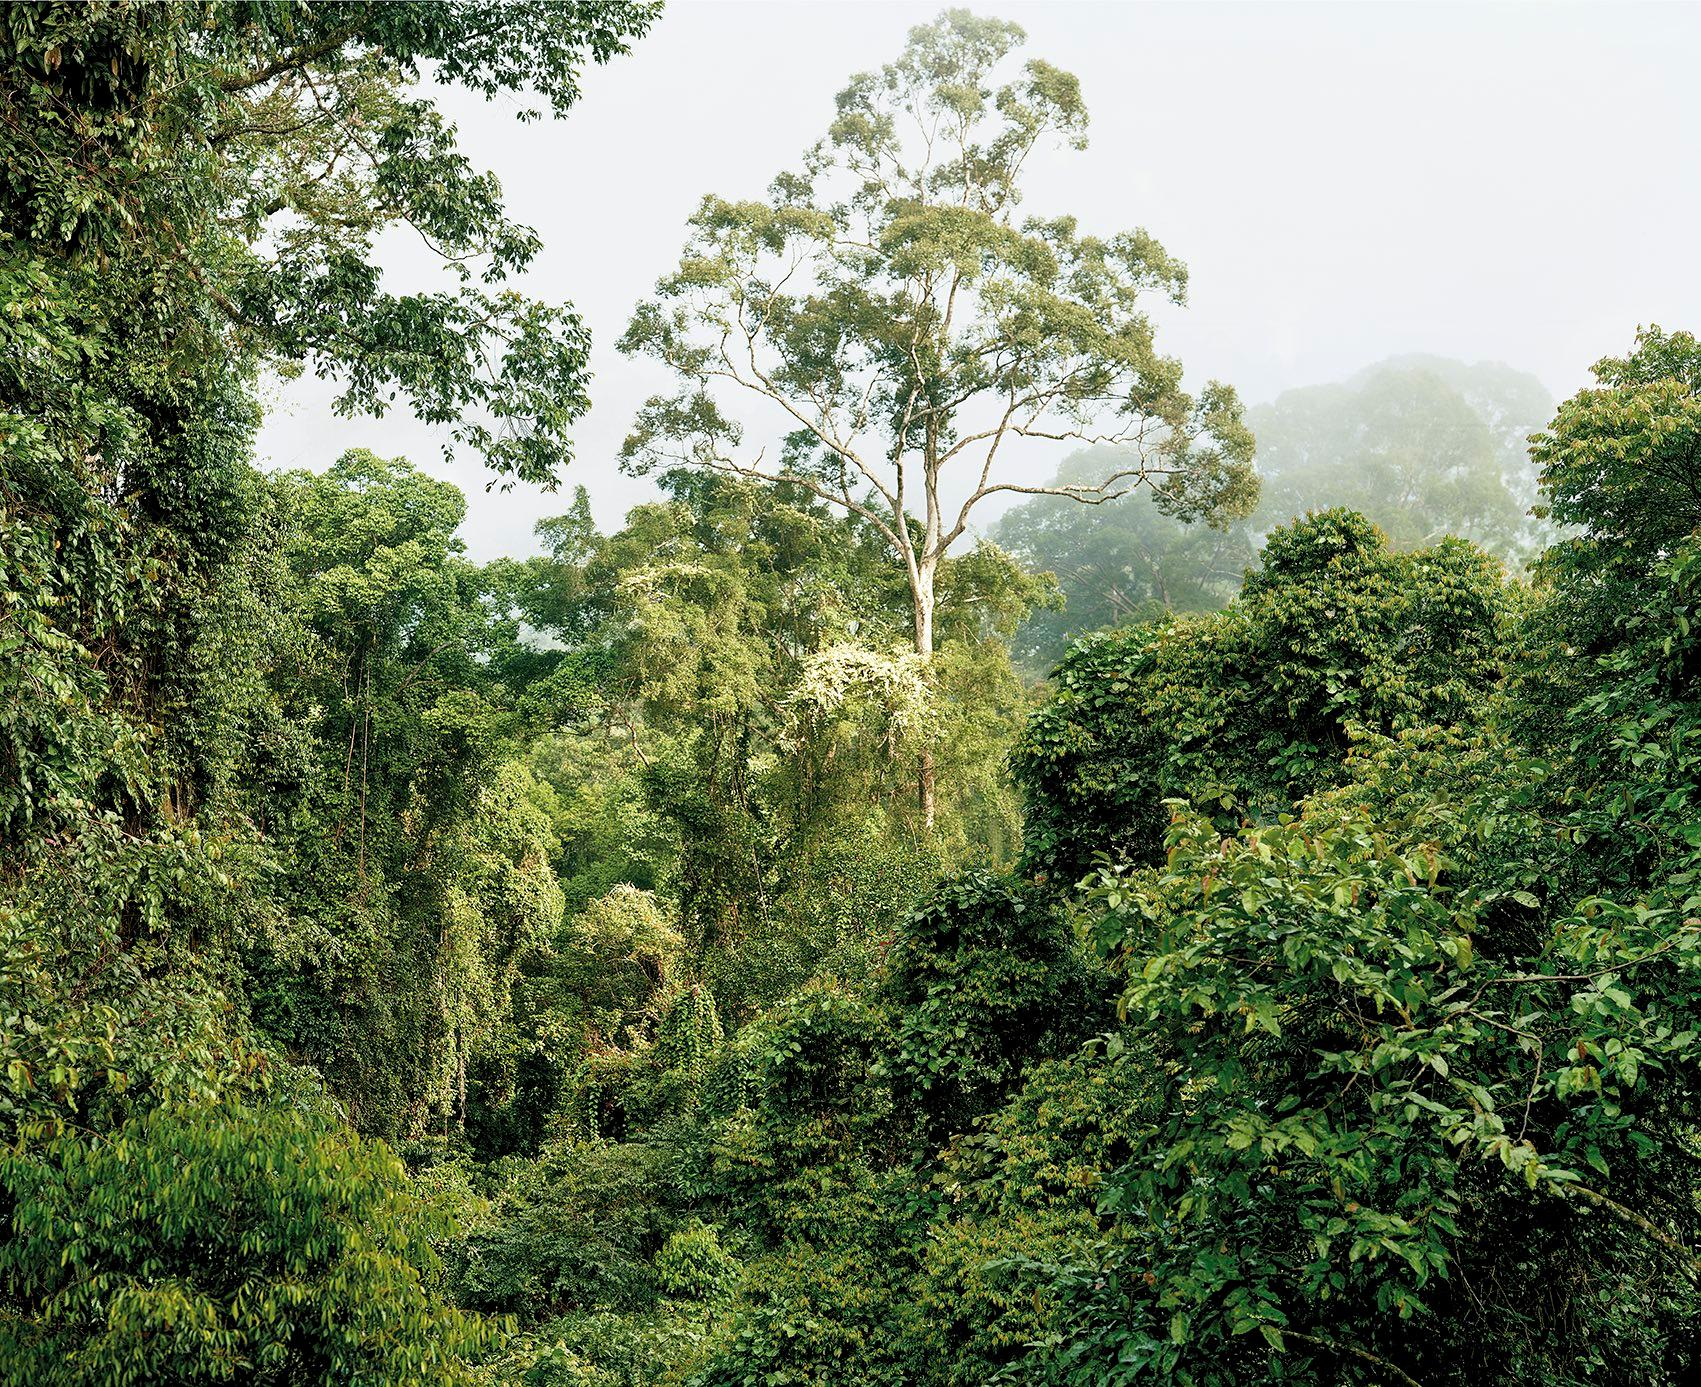 Primary Forest 7, Malaysia 10/2012 - Olaf Otto Becker